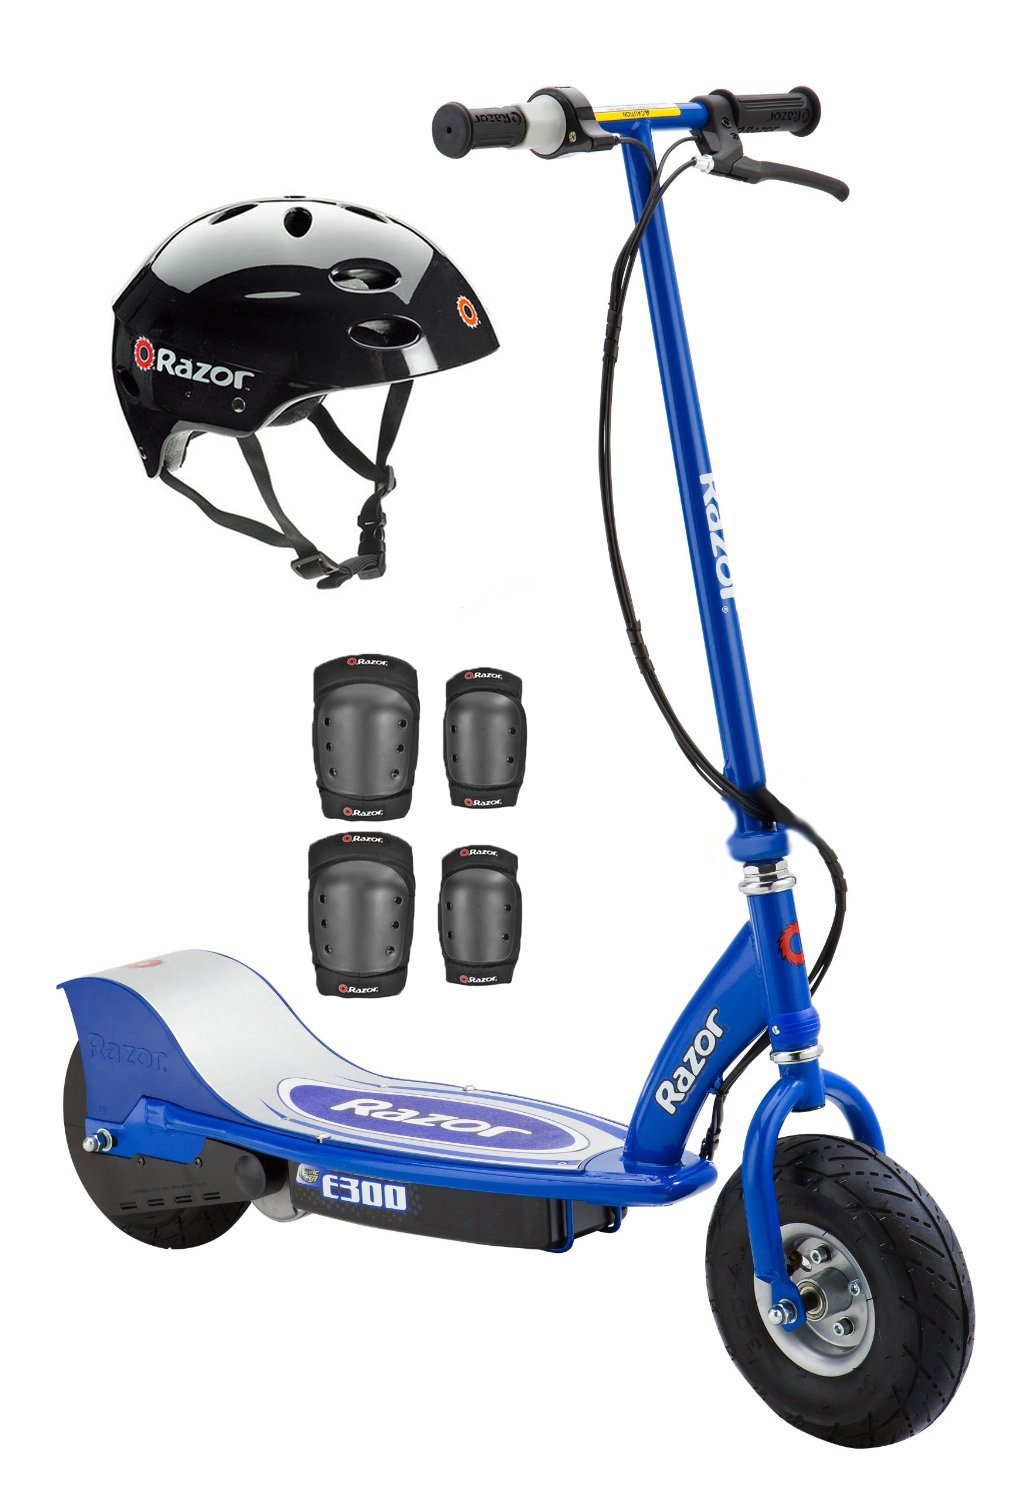 Razor E300 Electric Motorized Scooter (Blue) with Helmet, Elbow & Knee Pads by Razor